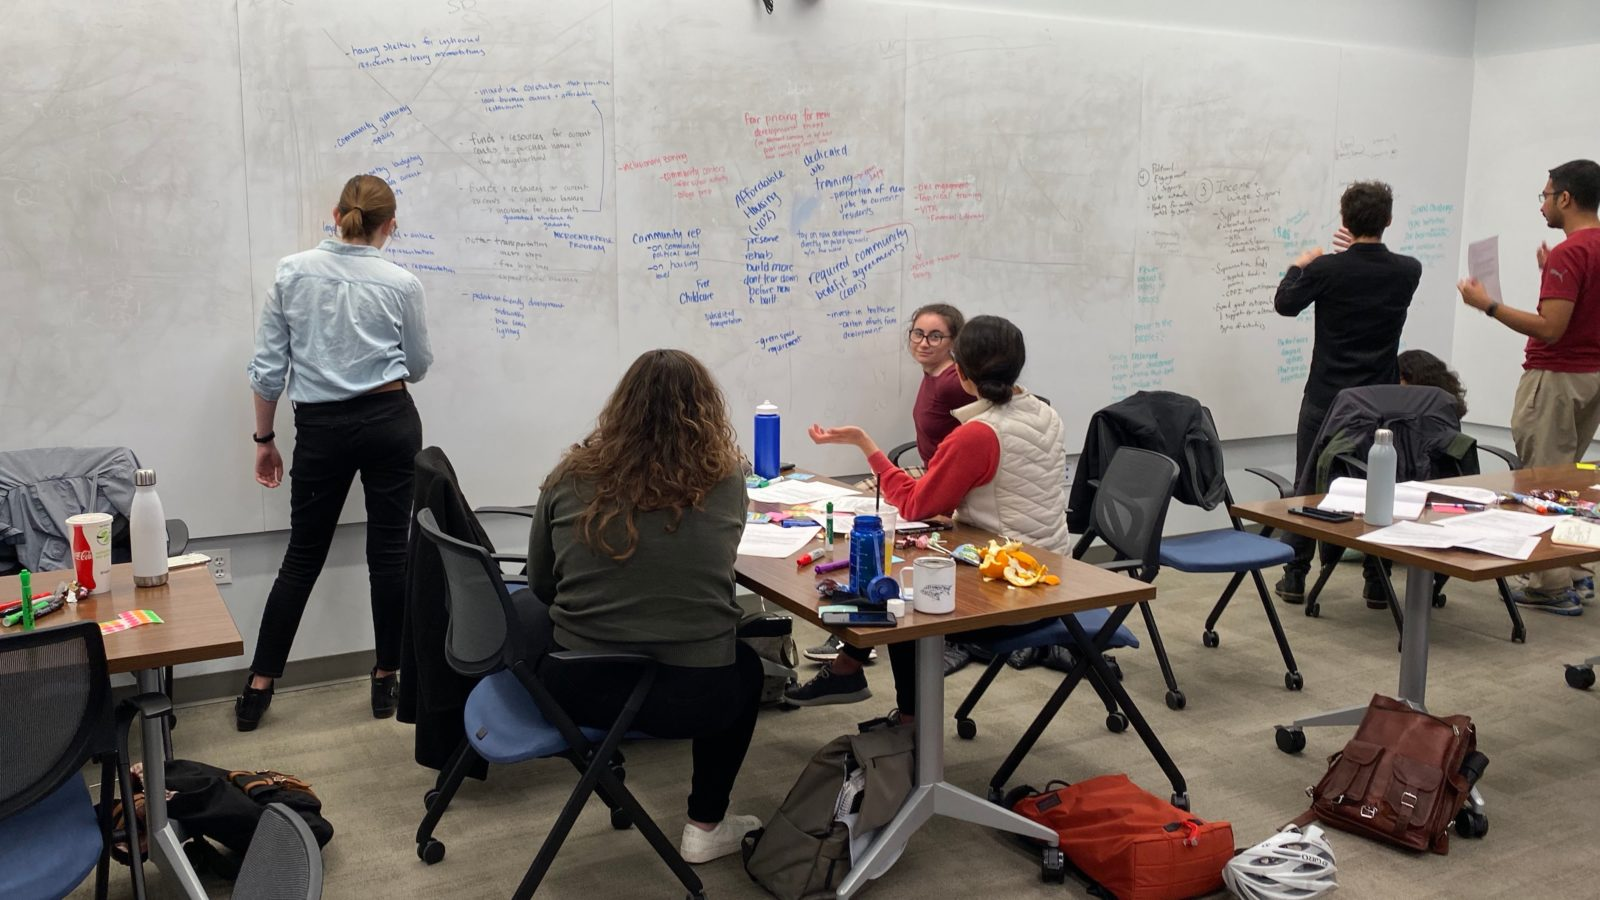 Students working in the community - seated at a table and writing items on a board